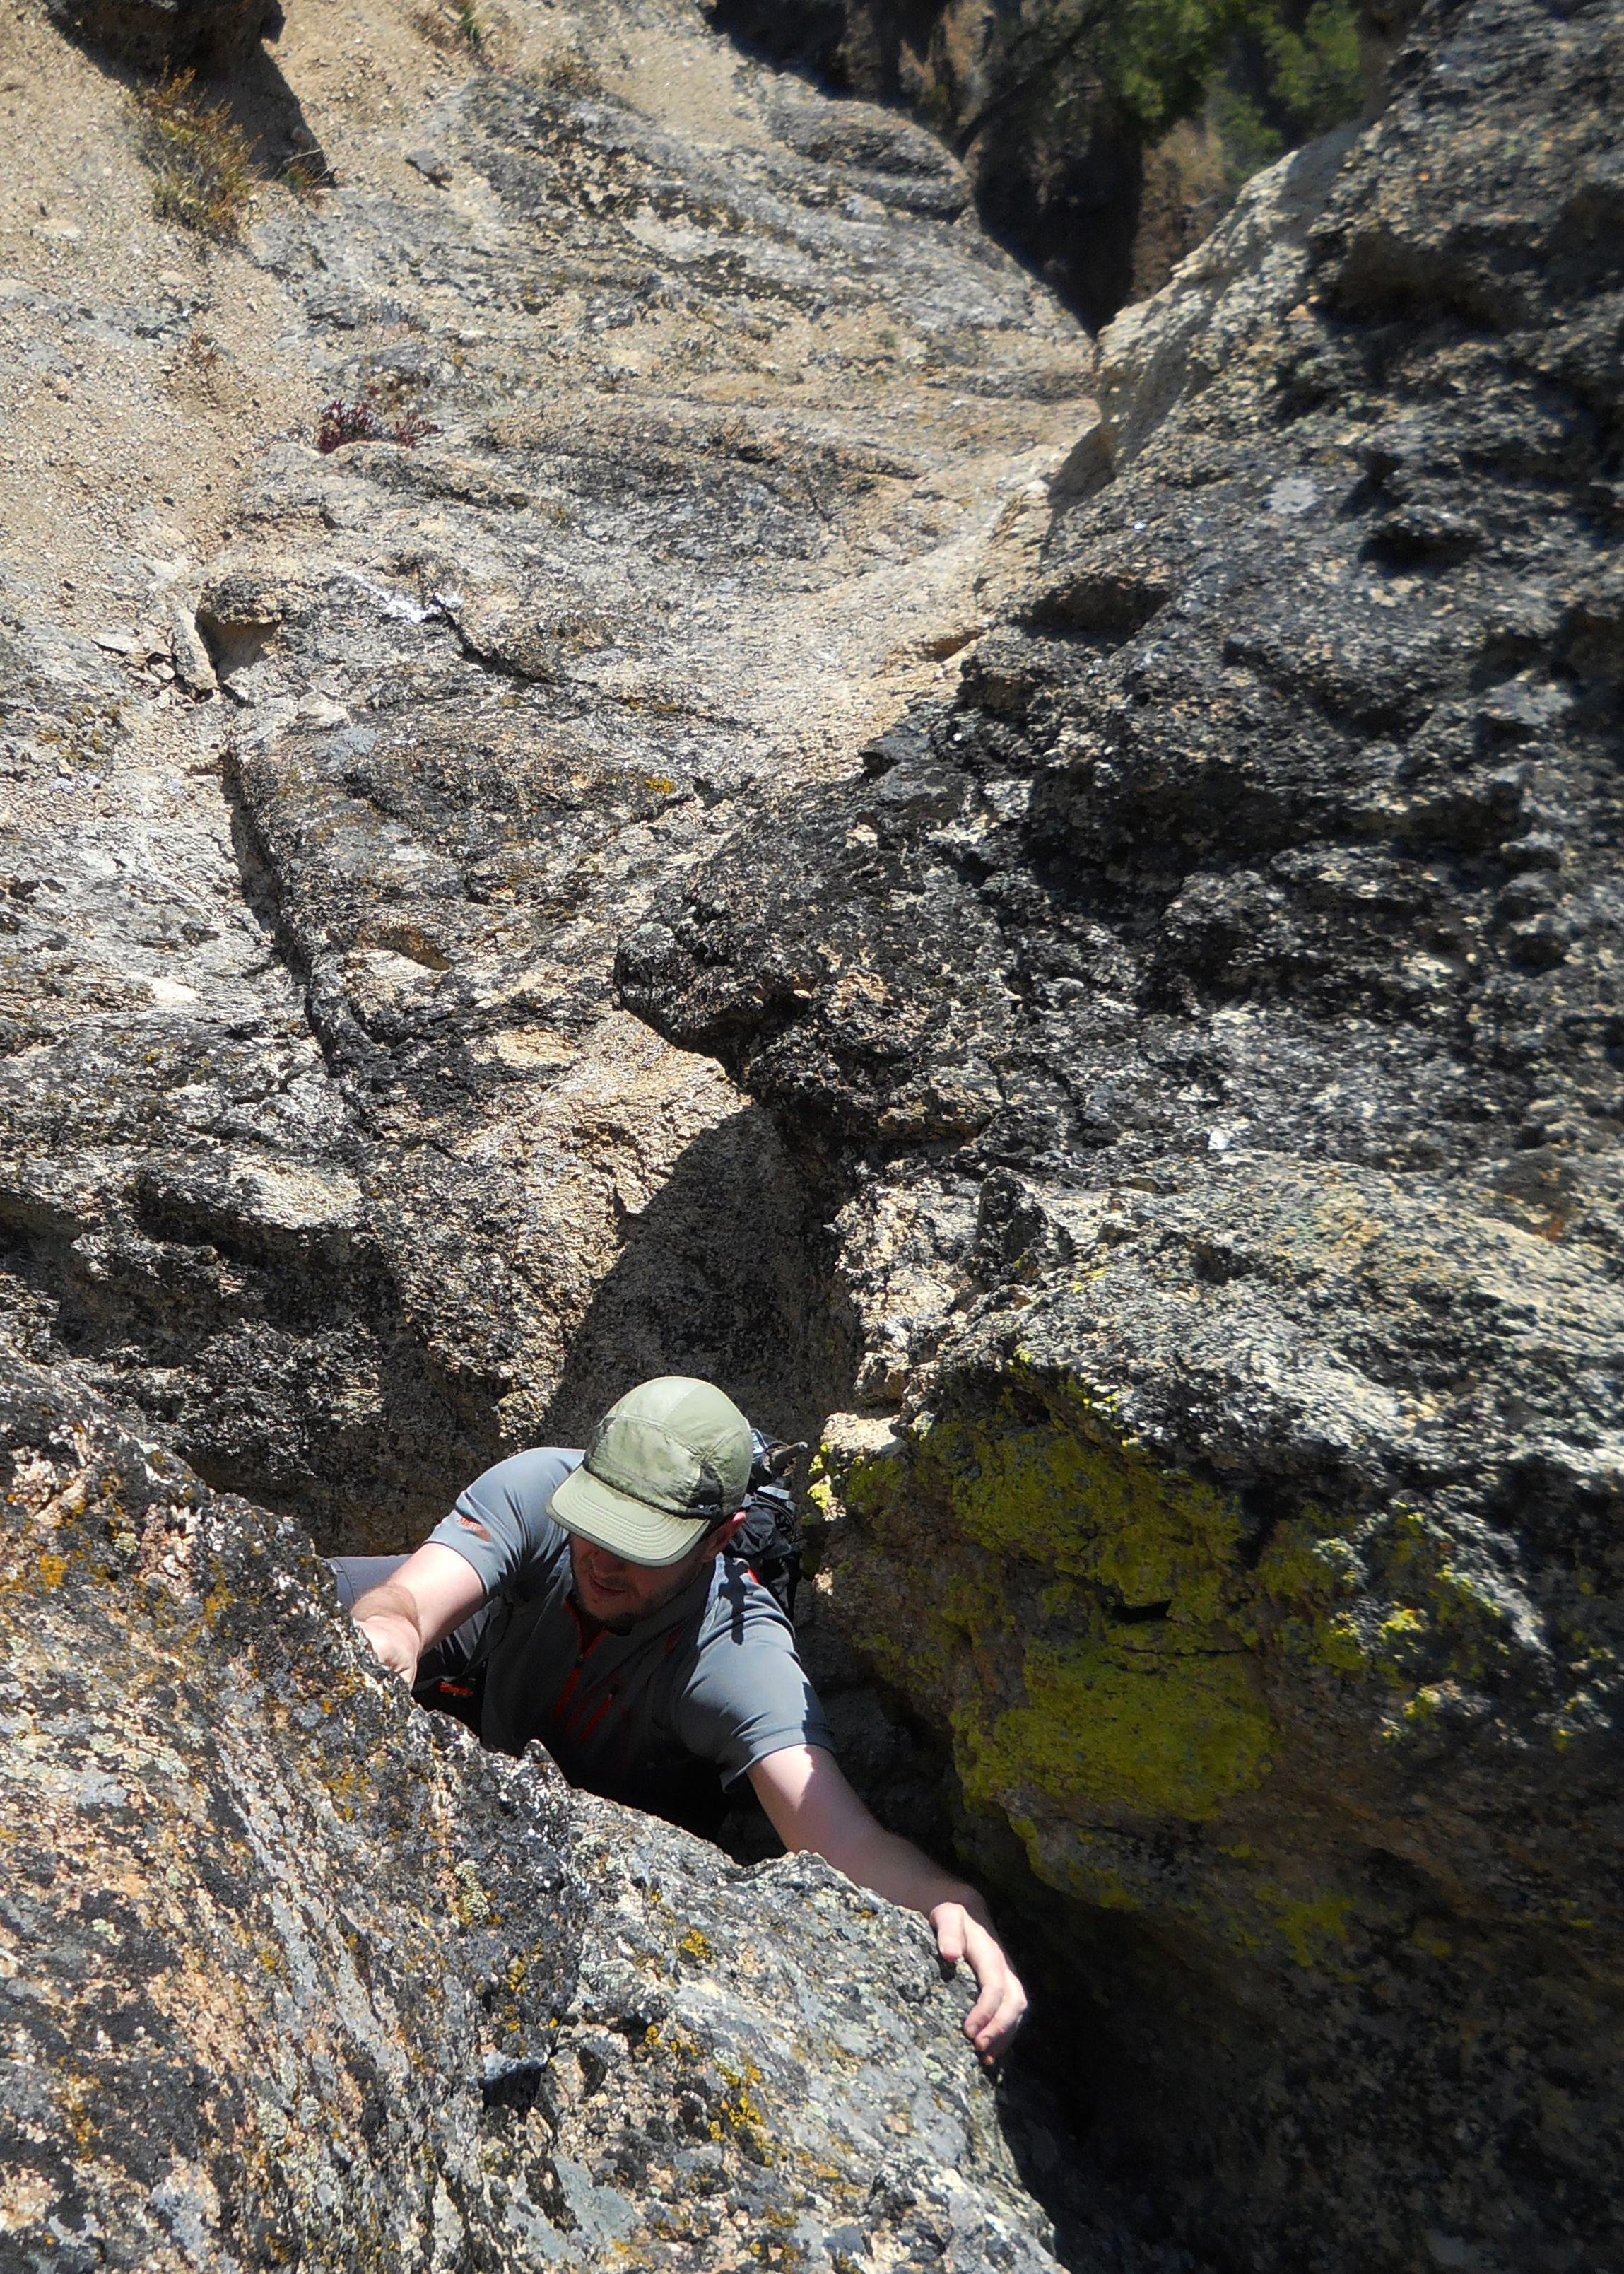 Jason climbing the final bulge. The feet below. Pat McGrane Photo